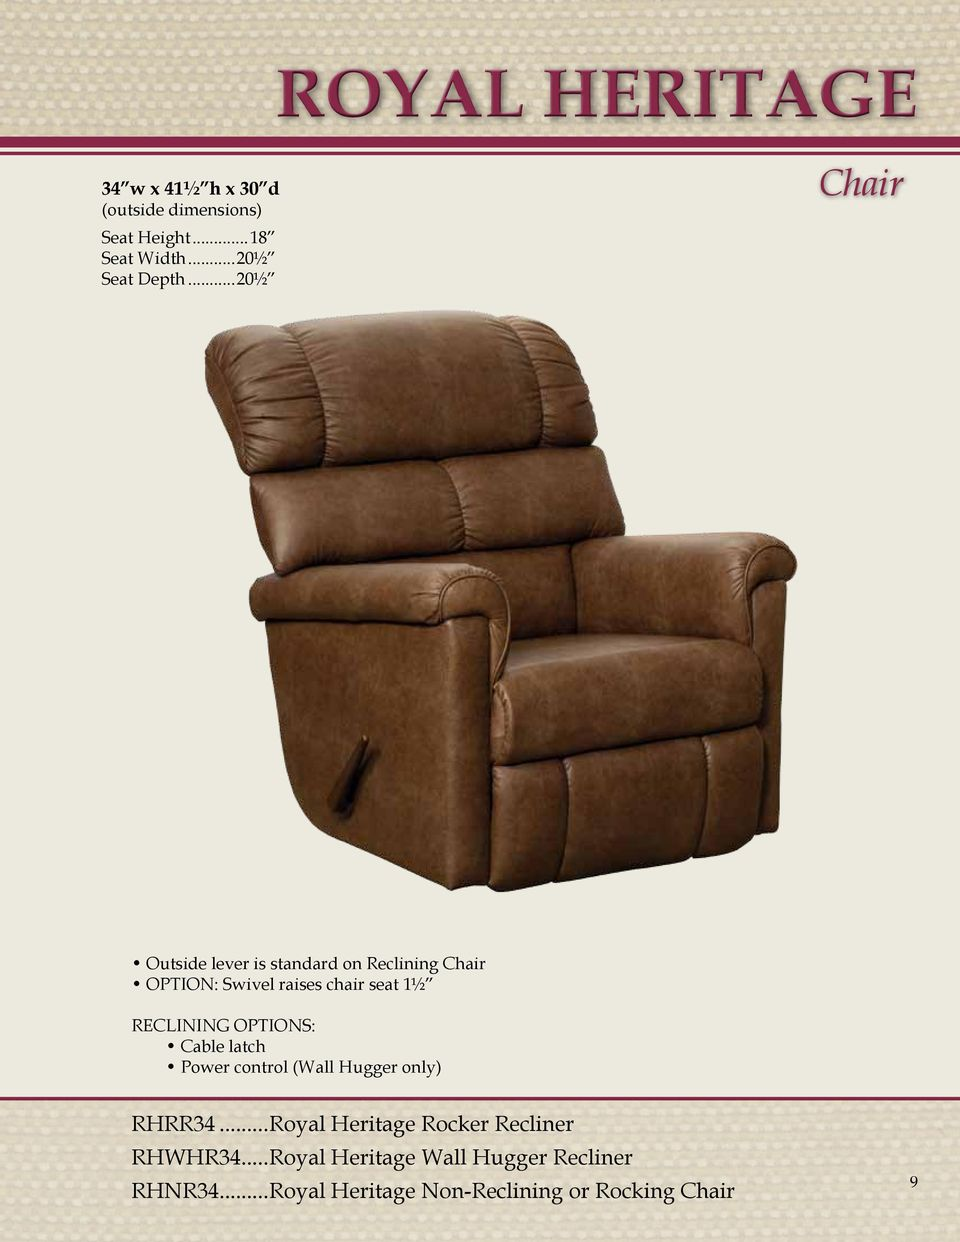 seat 1½ RECLINING OPTIONS: Cable latch Power control (Wall Hugger only) RHRR34.